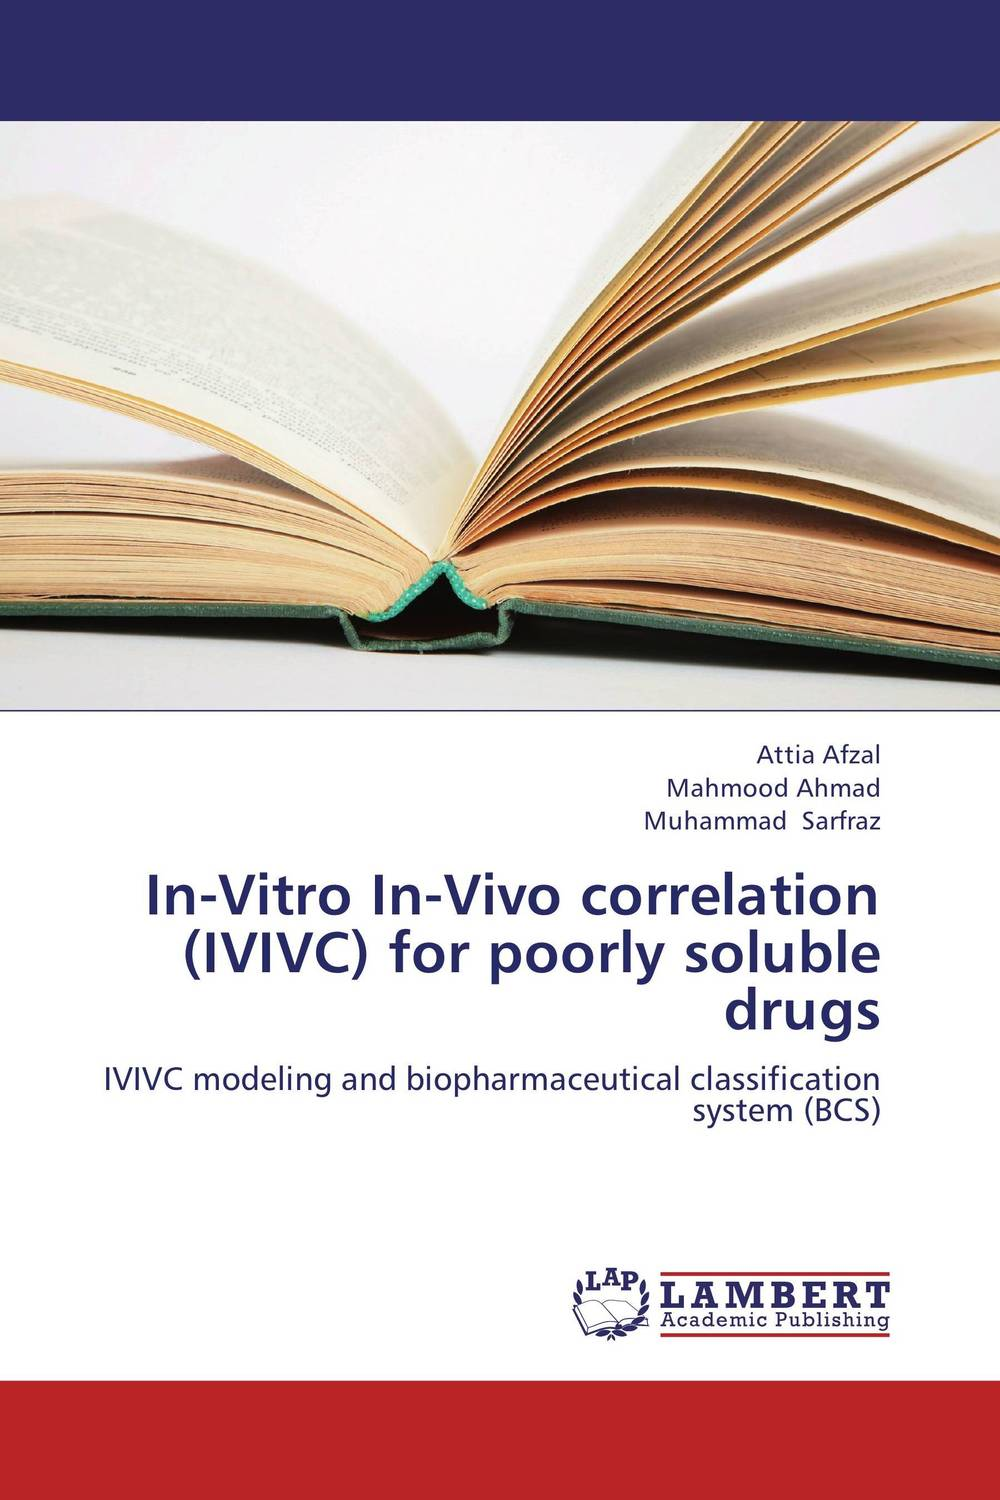 In-Vitro In-Vivo correlation (IVIVC) for poorly soluble drugs attia afzal mahmood ahmad and muhammad sarfraz in vitro in vivo correlation ivivc for poorly soluble drugs